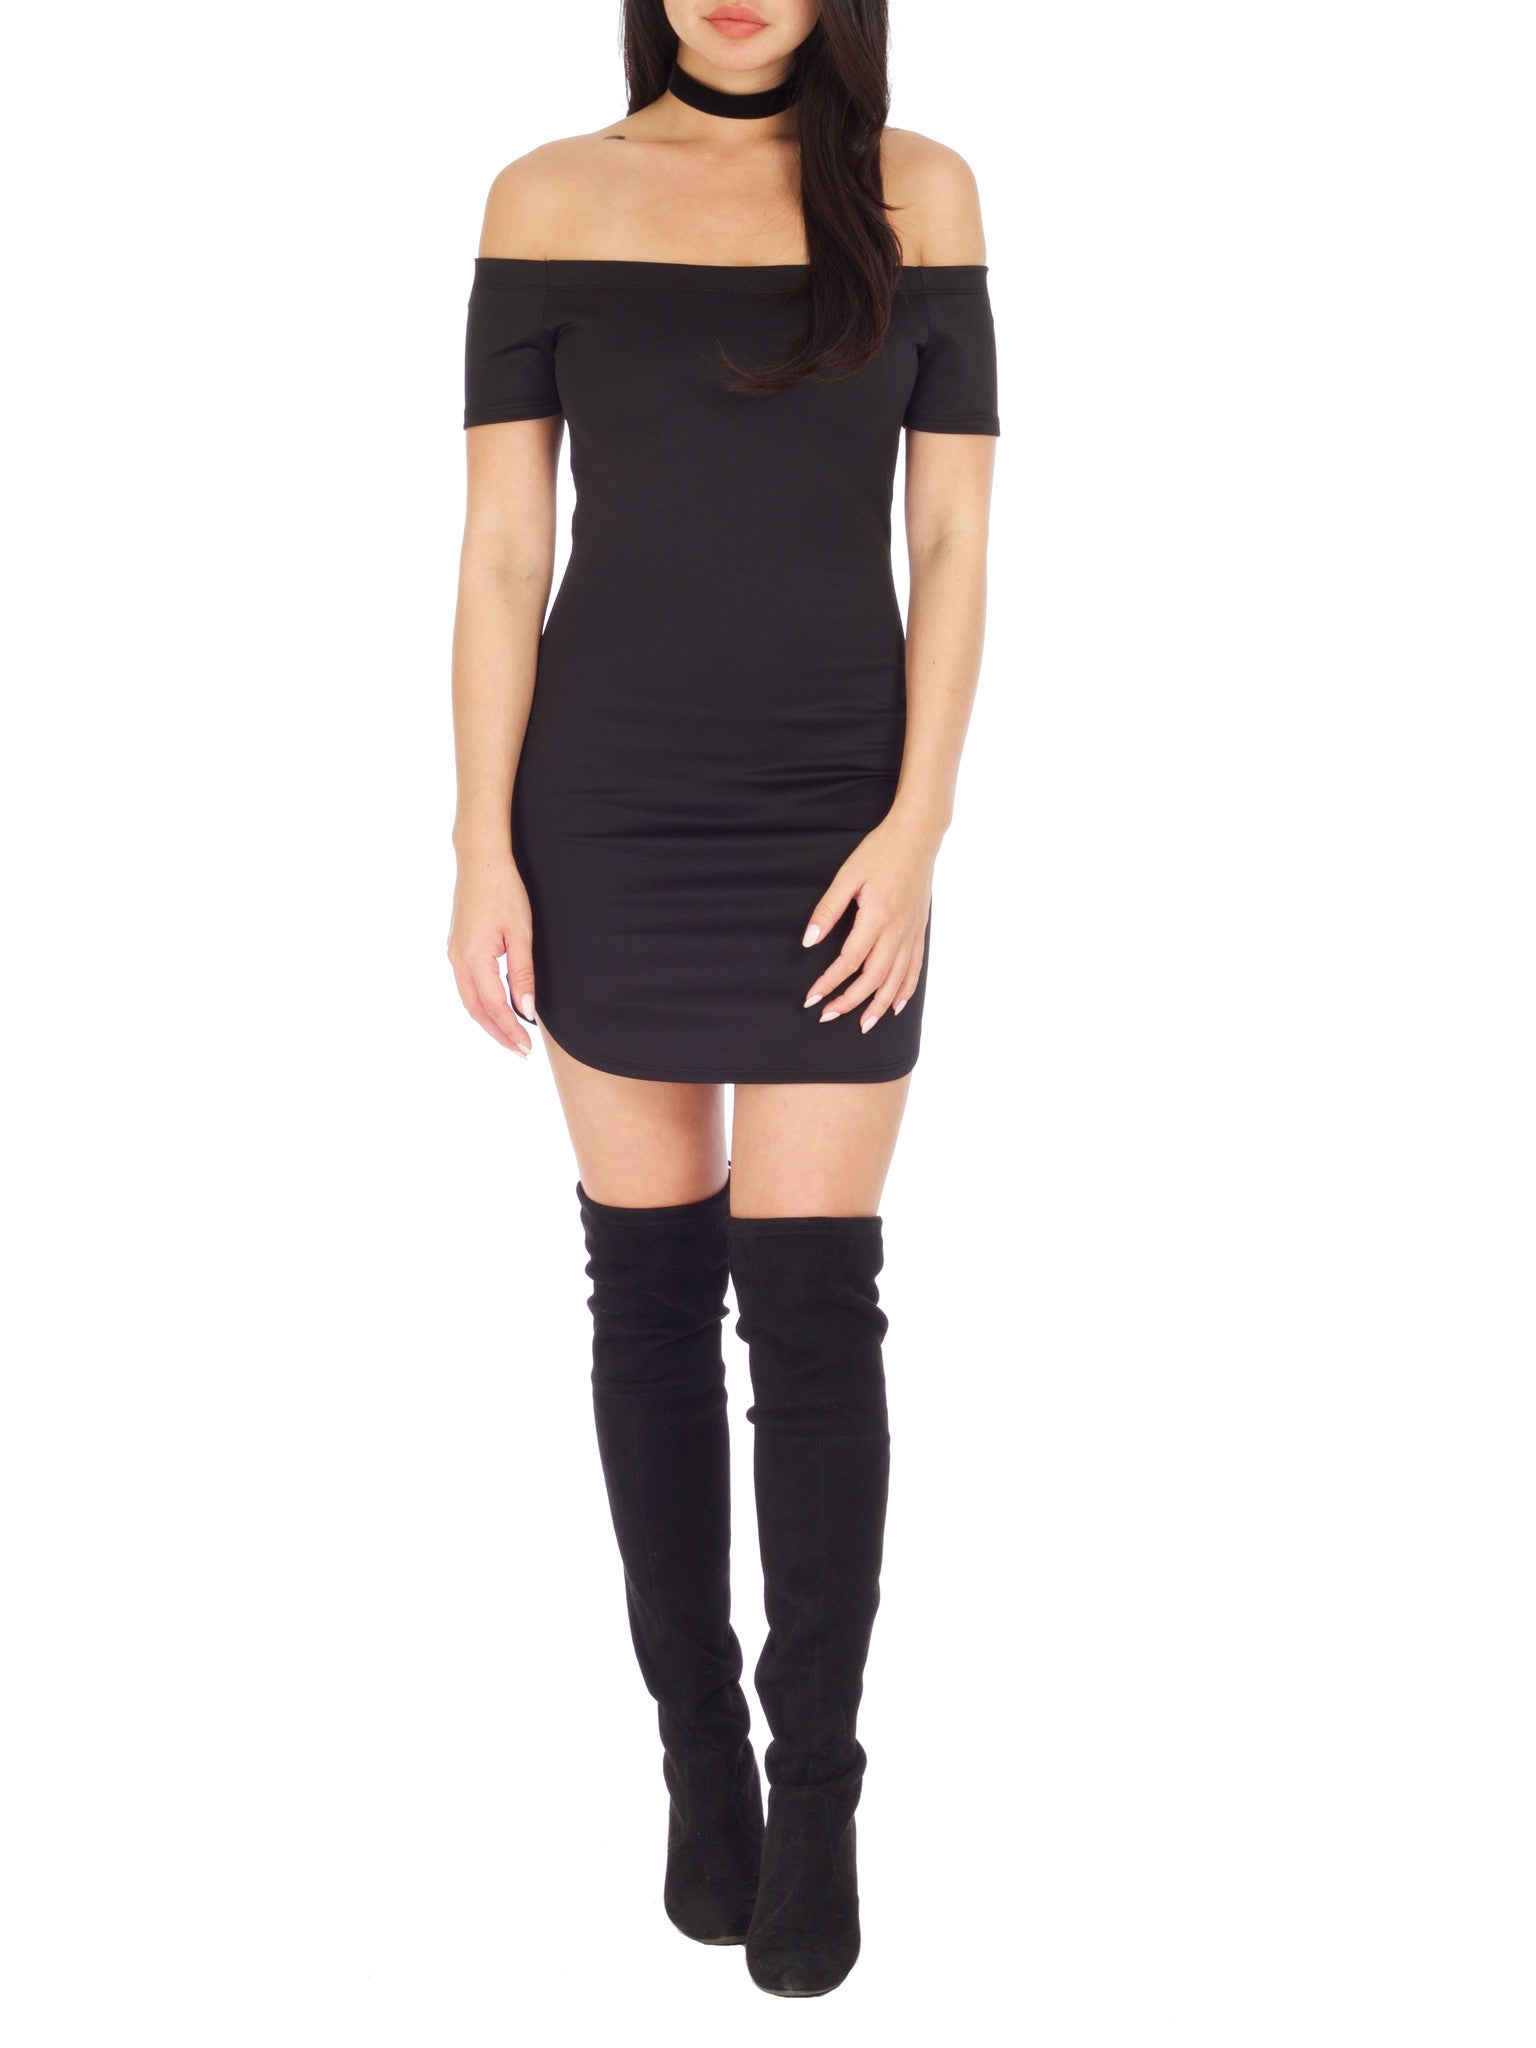 Scoop Me Mini Dress - PRADEGAL